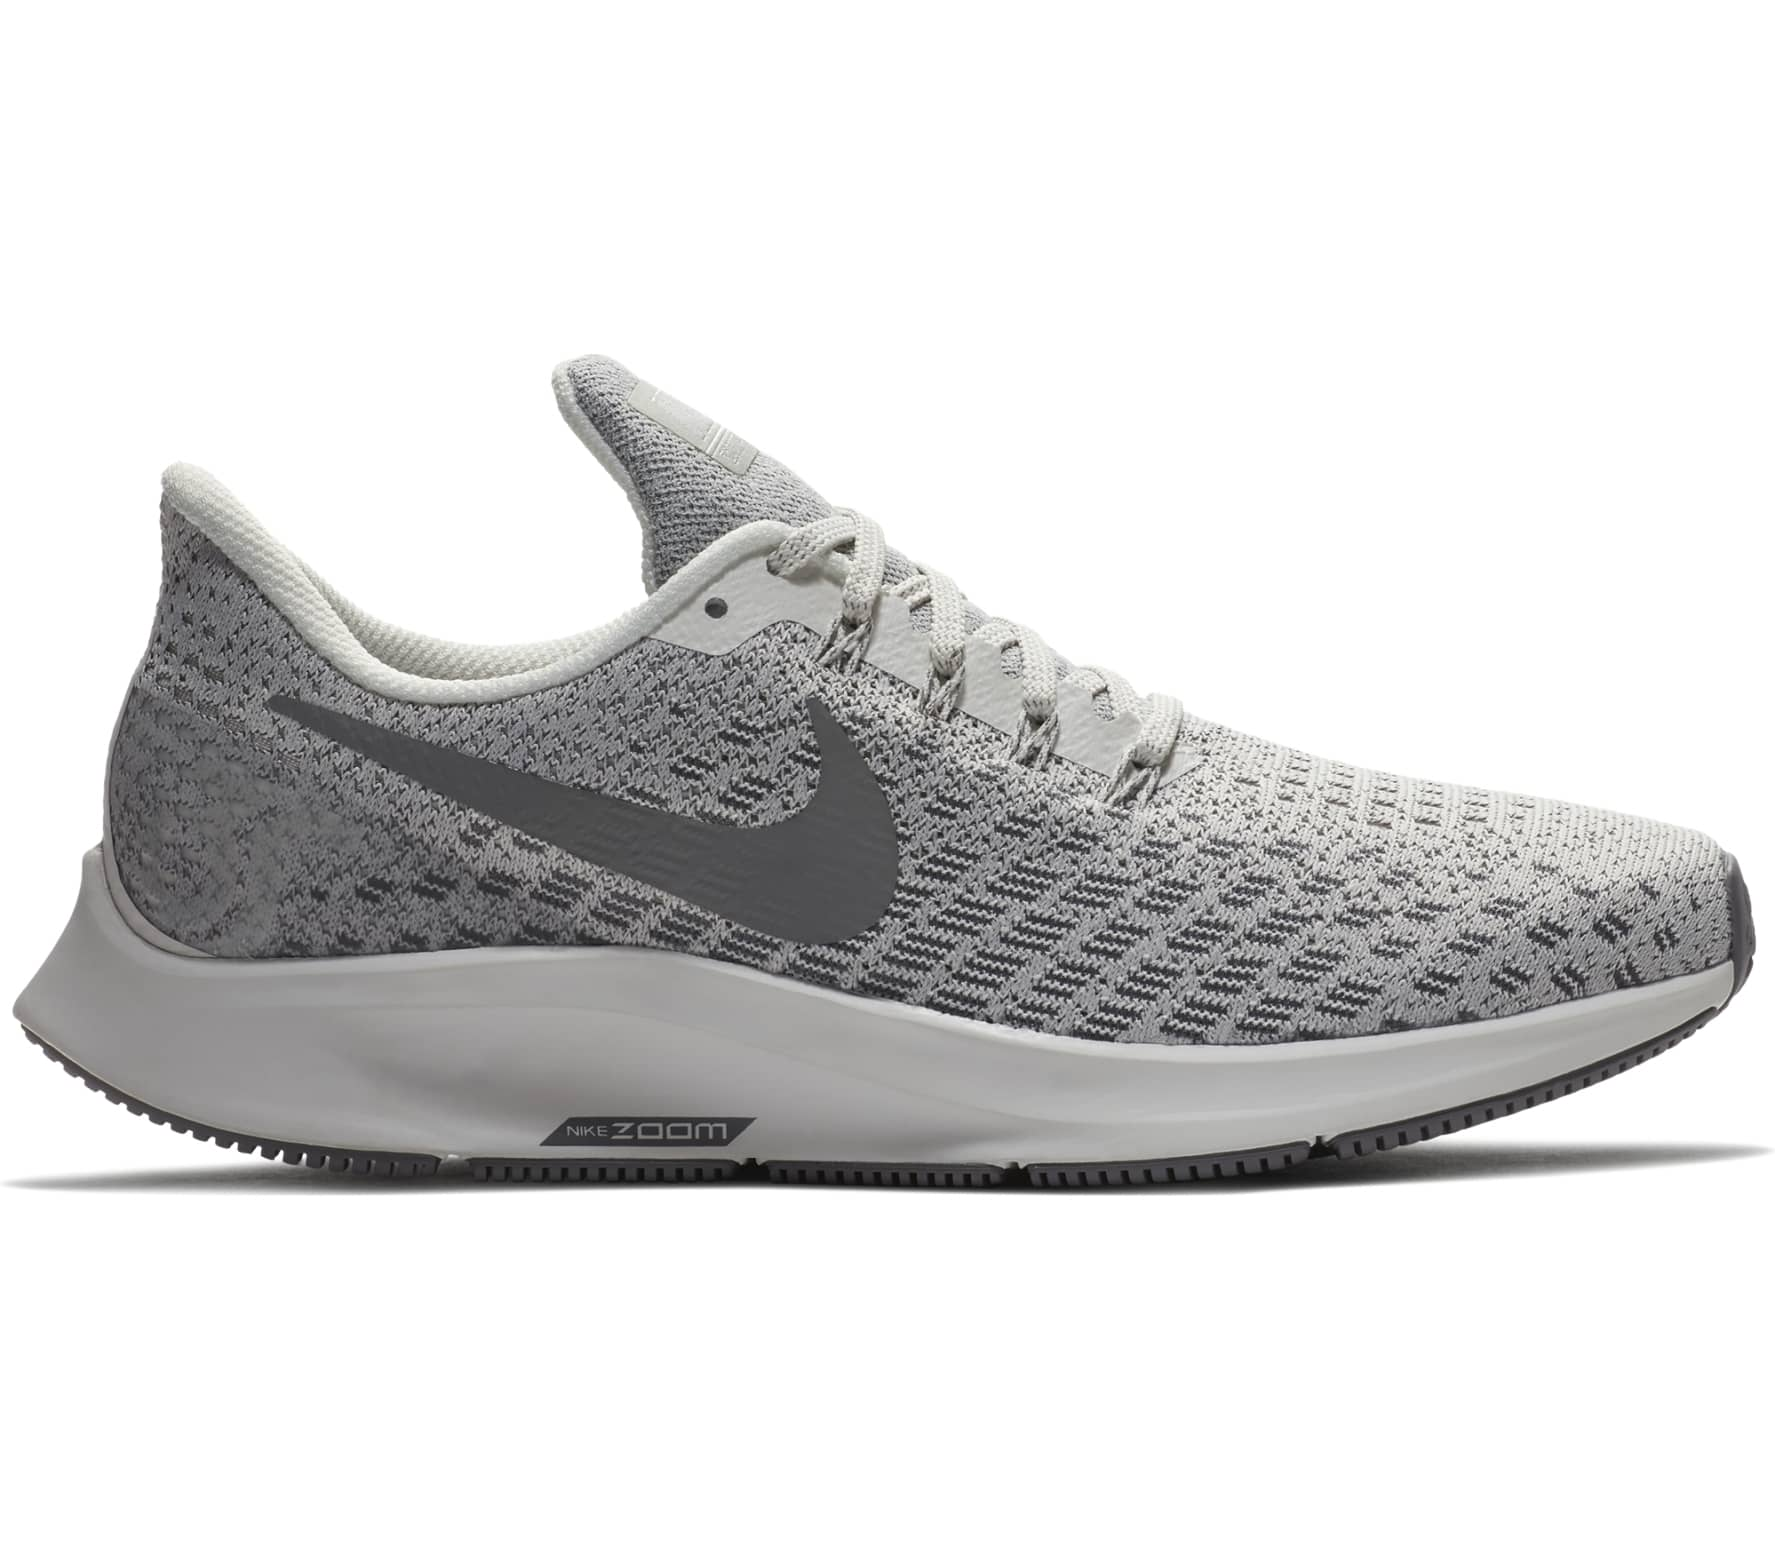 finest selection 695dd 8bfd9 Nike - Air Zoom Pegasus 35 Mujer Zapatos para correr (gris)